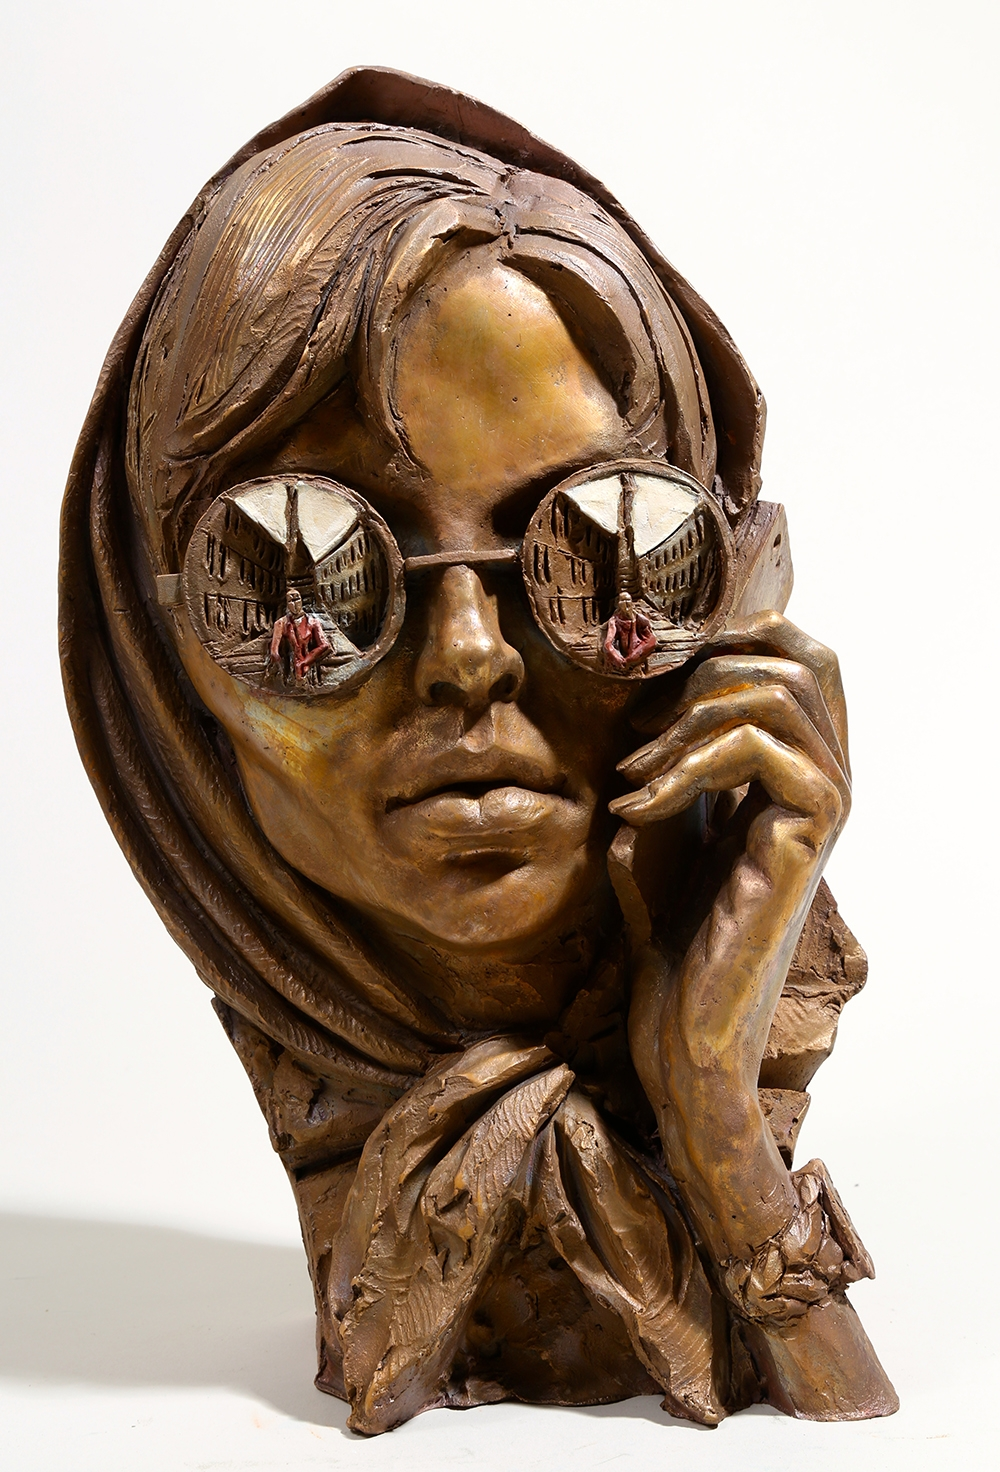 Grace 2016 bronze by british sculptor, Paul Day